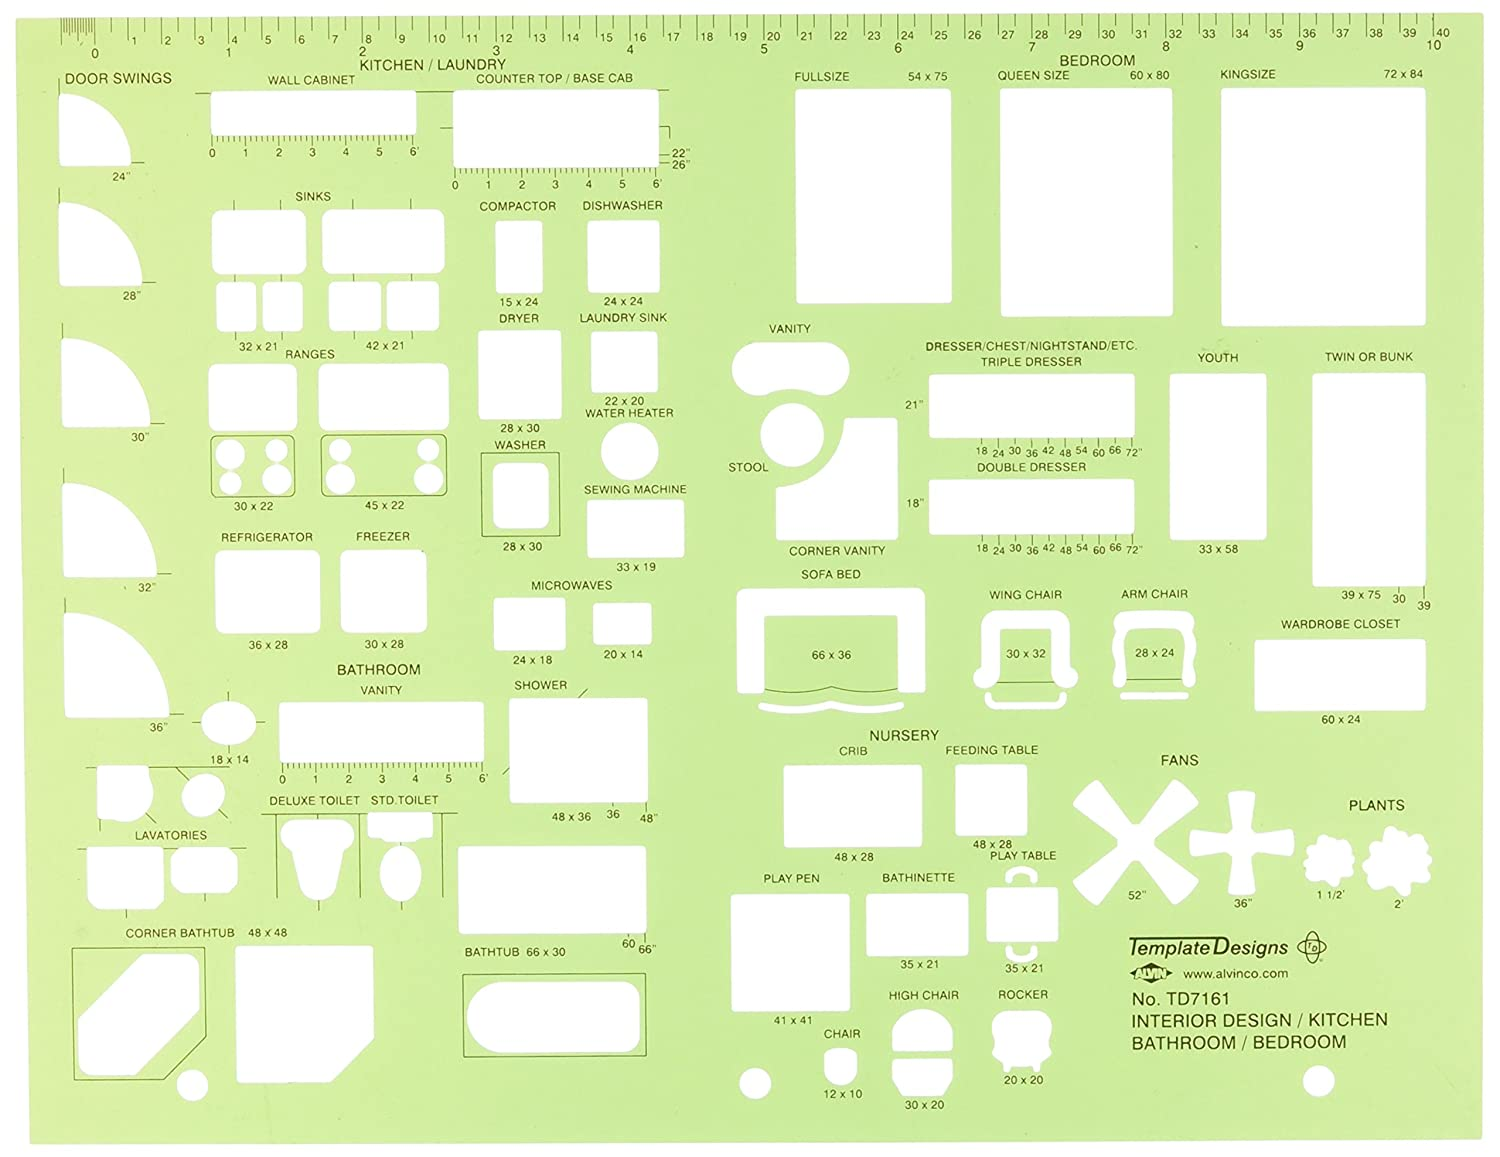 Amazon Alvin Interior Design Kitchen Bed Bath Template TD7161 Drafting Tools Office Products